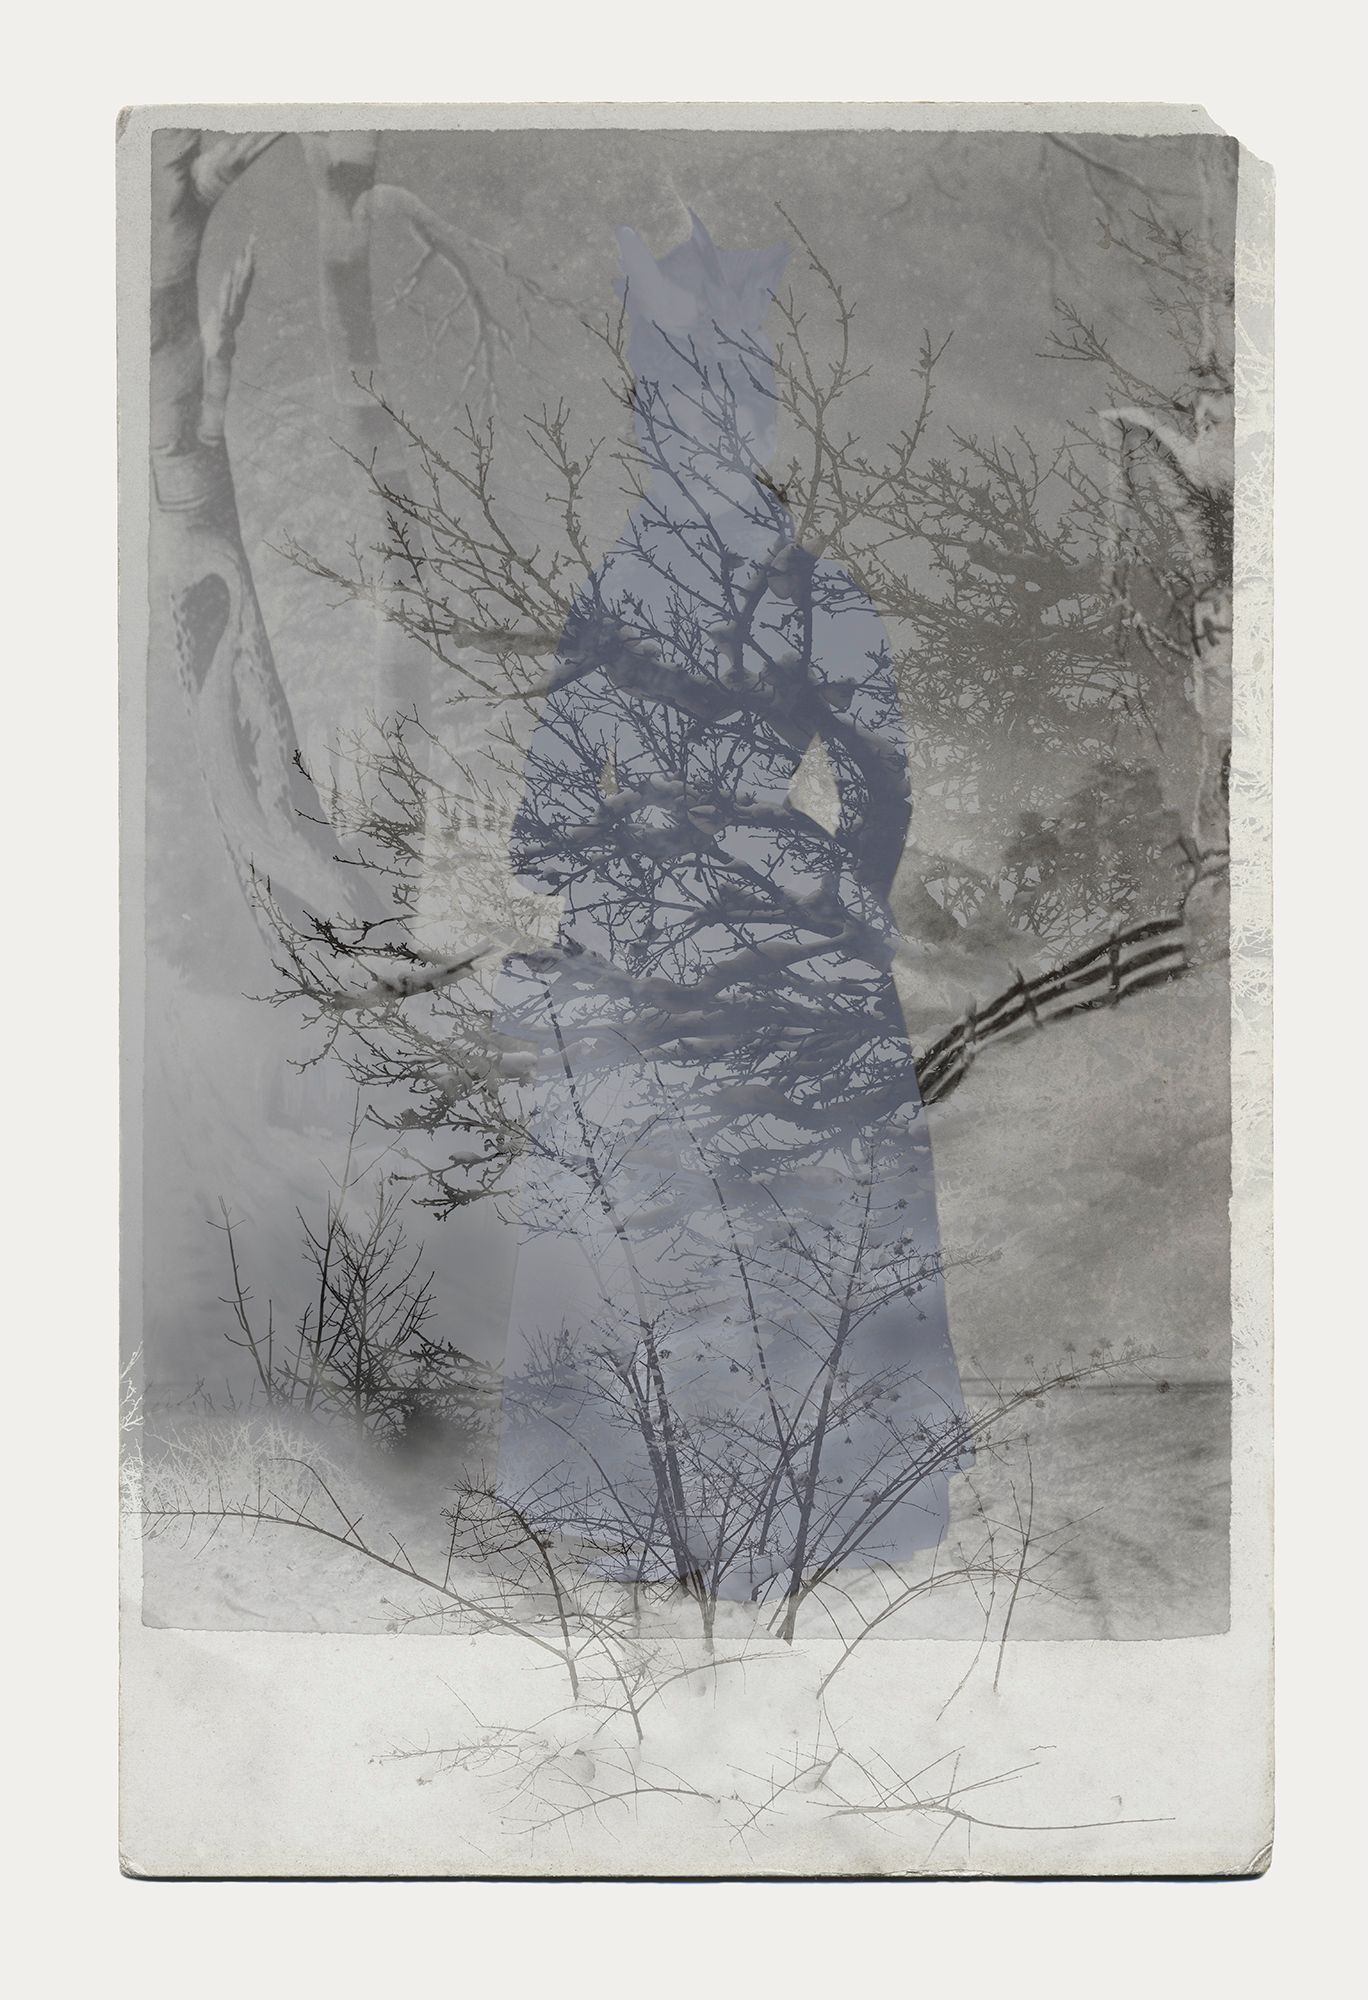 Woman/Winter/Forest. Inkjet print, 2016. Sara Angelucci